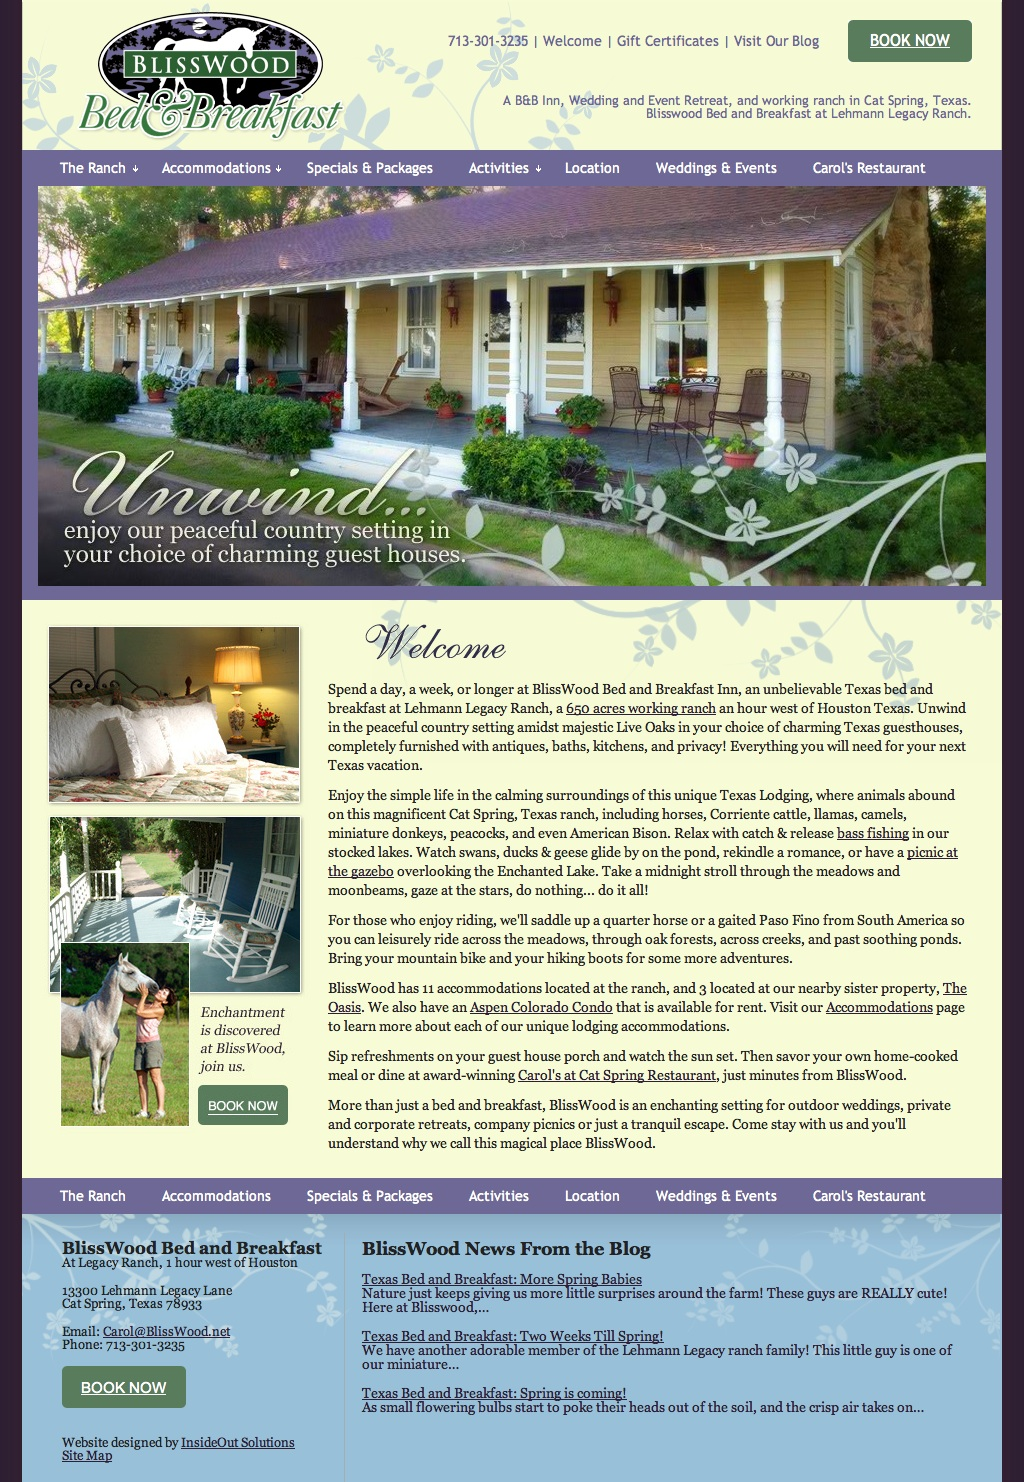 New Texas Bed and Breakfast Web site